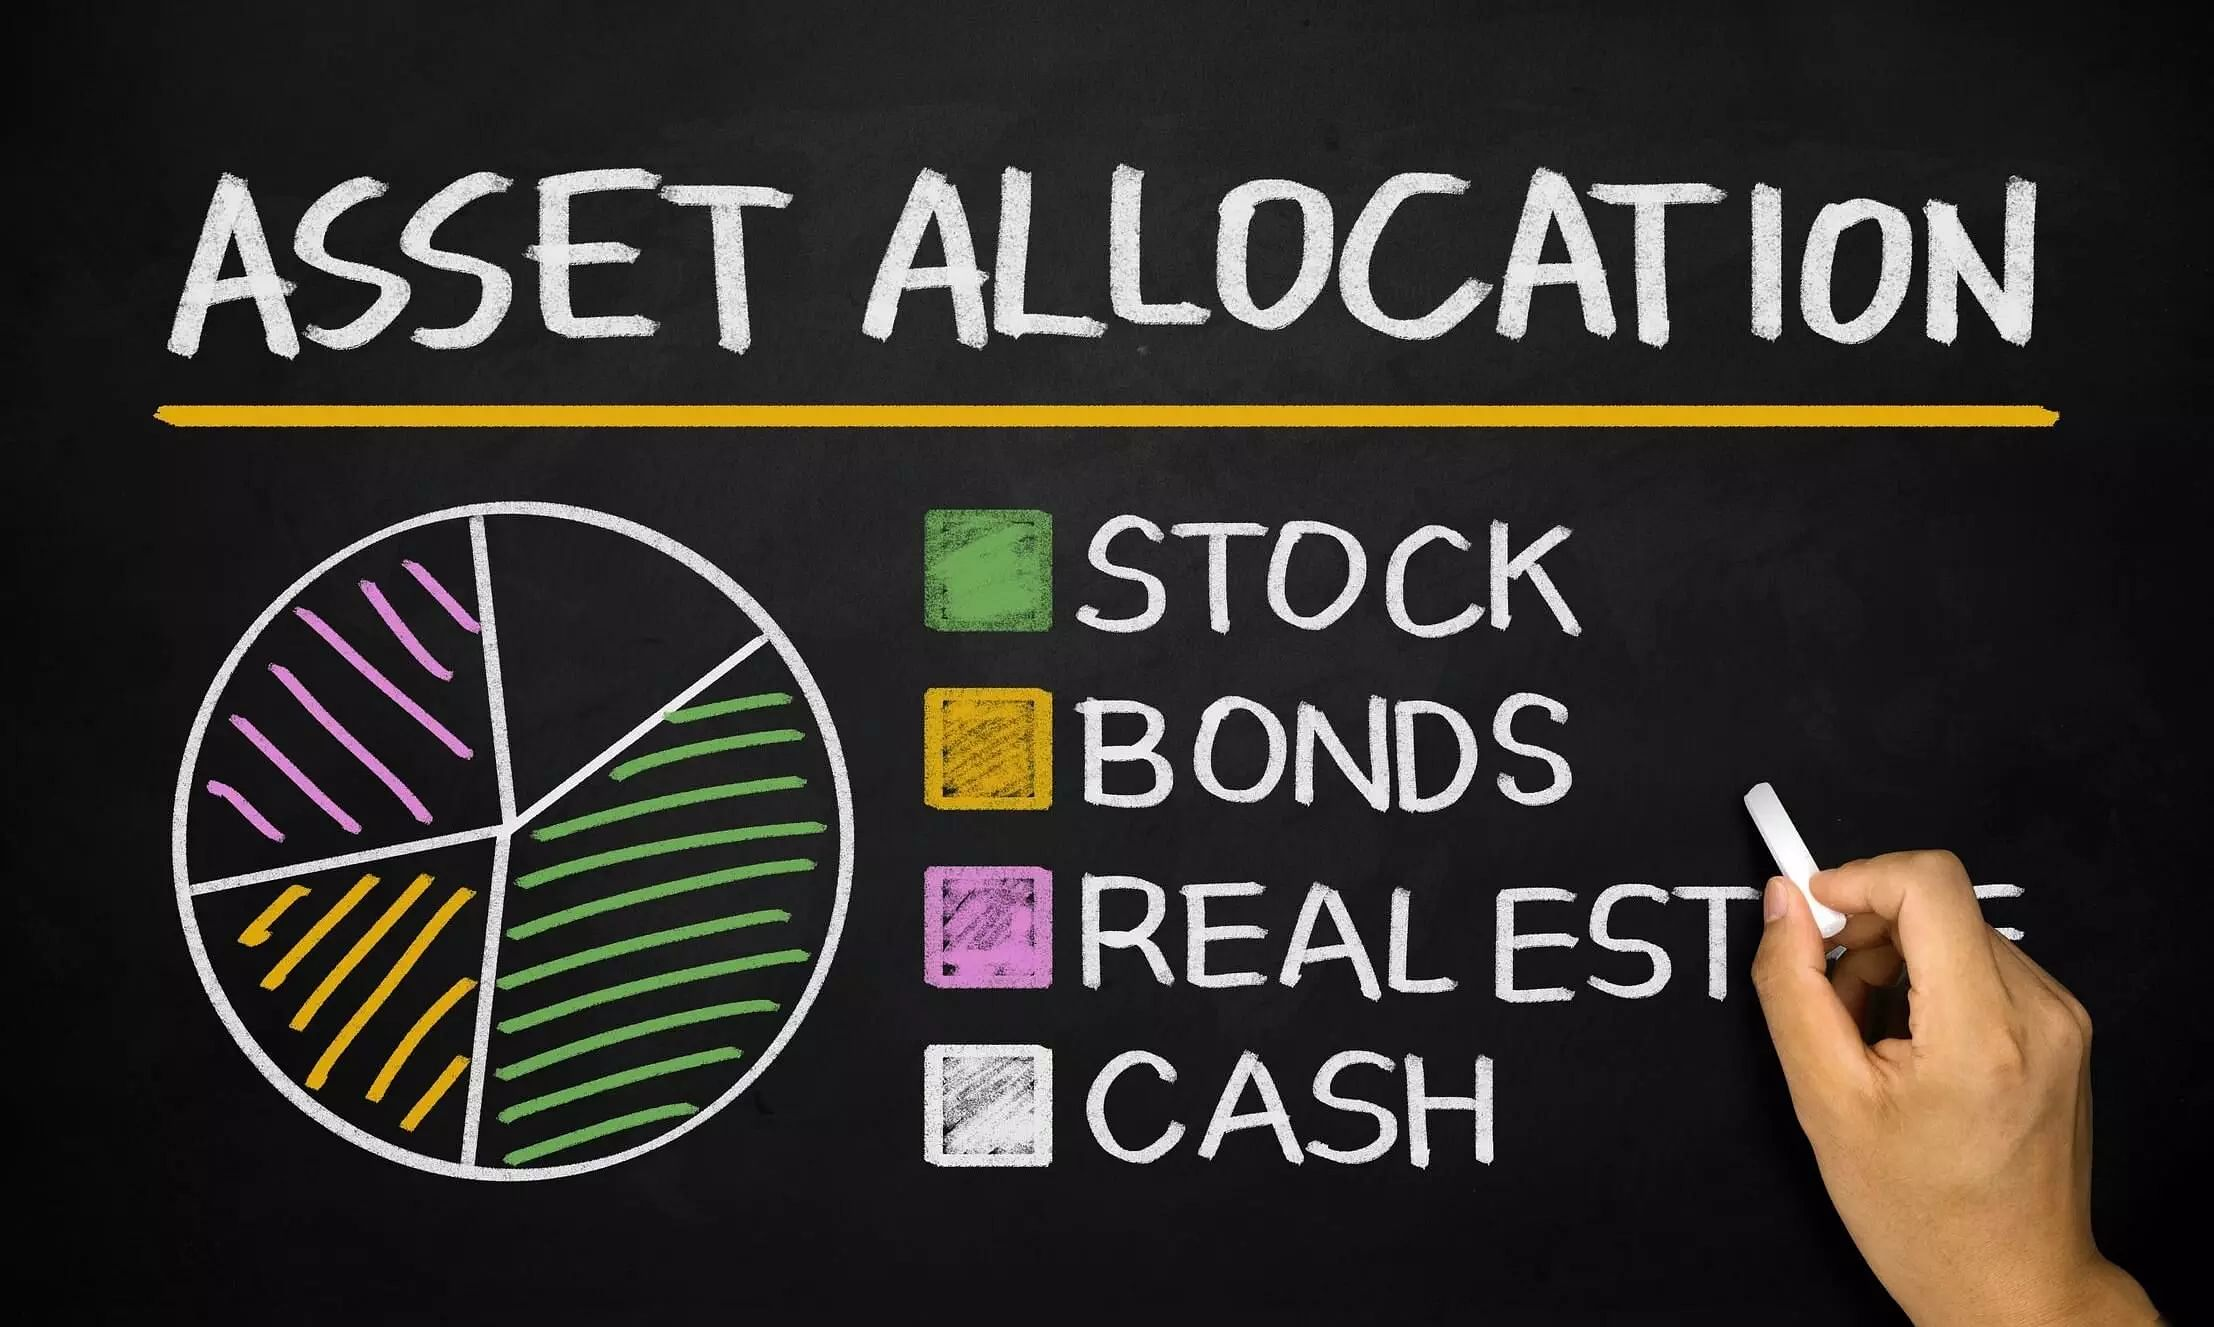 Looking for details about Asset Allocation? Read here